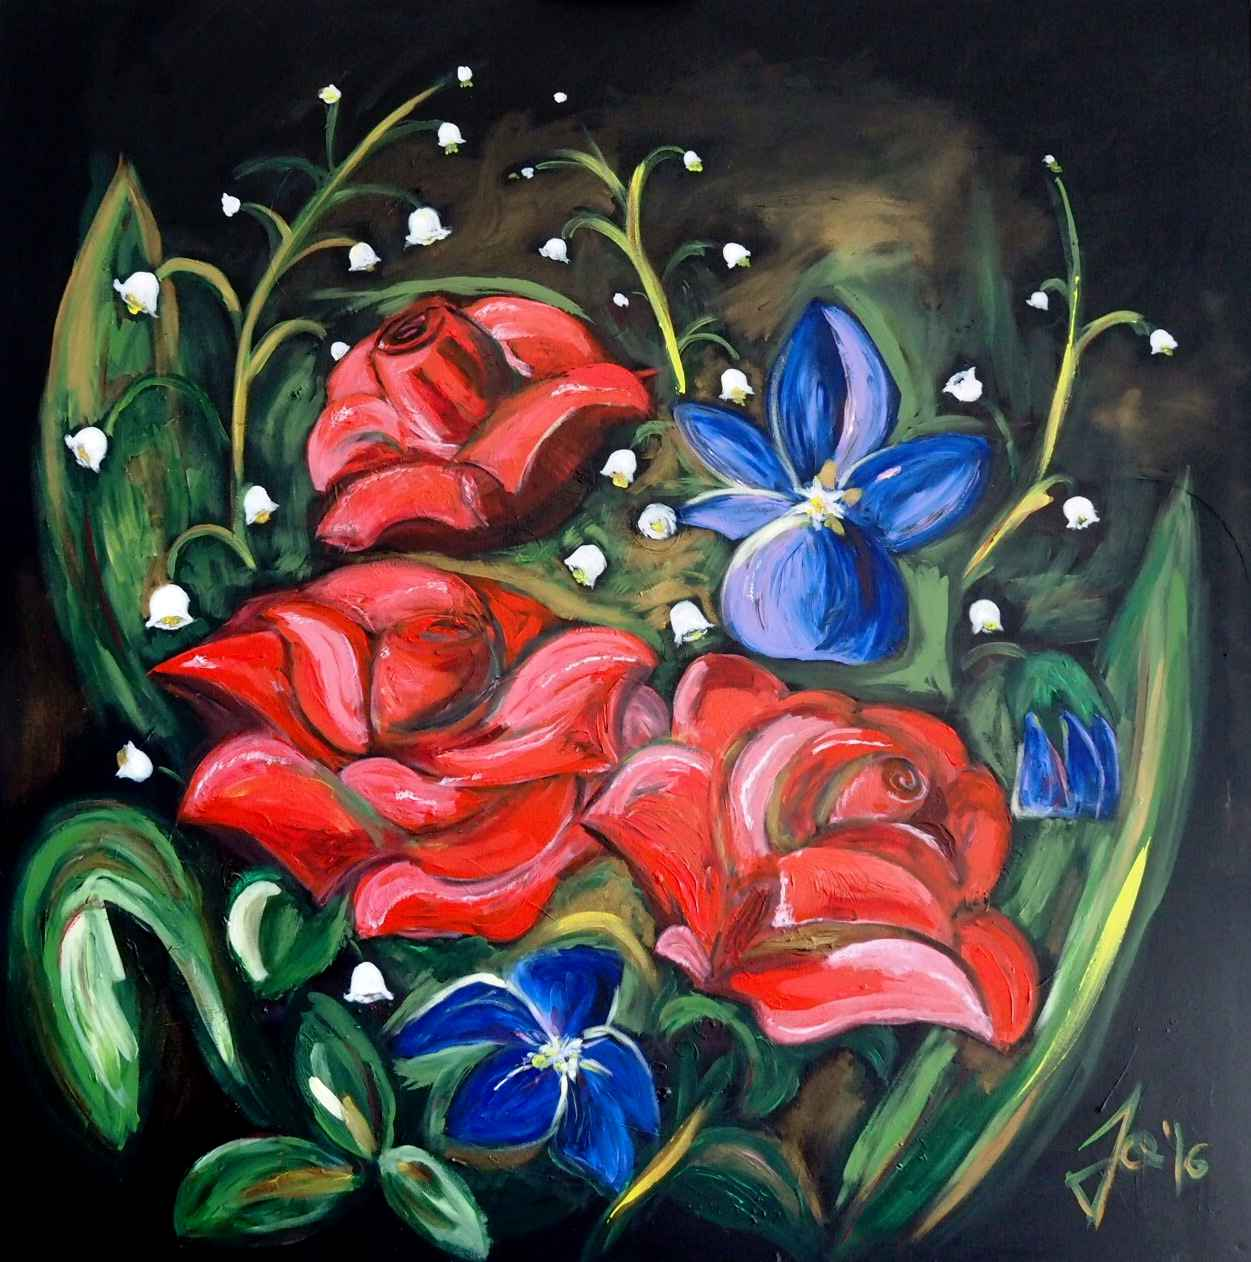 Roses and Violets by Mme Ioana JITARU - Masterpiece Online